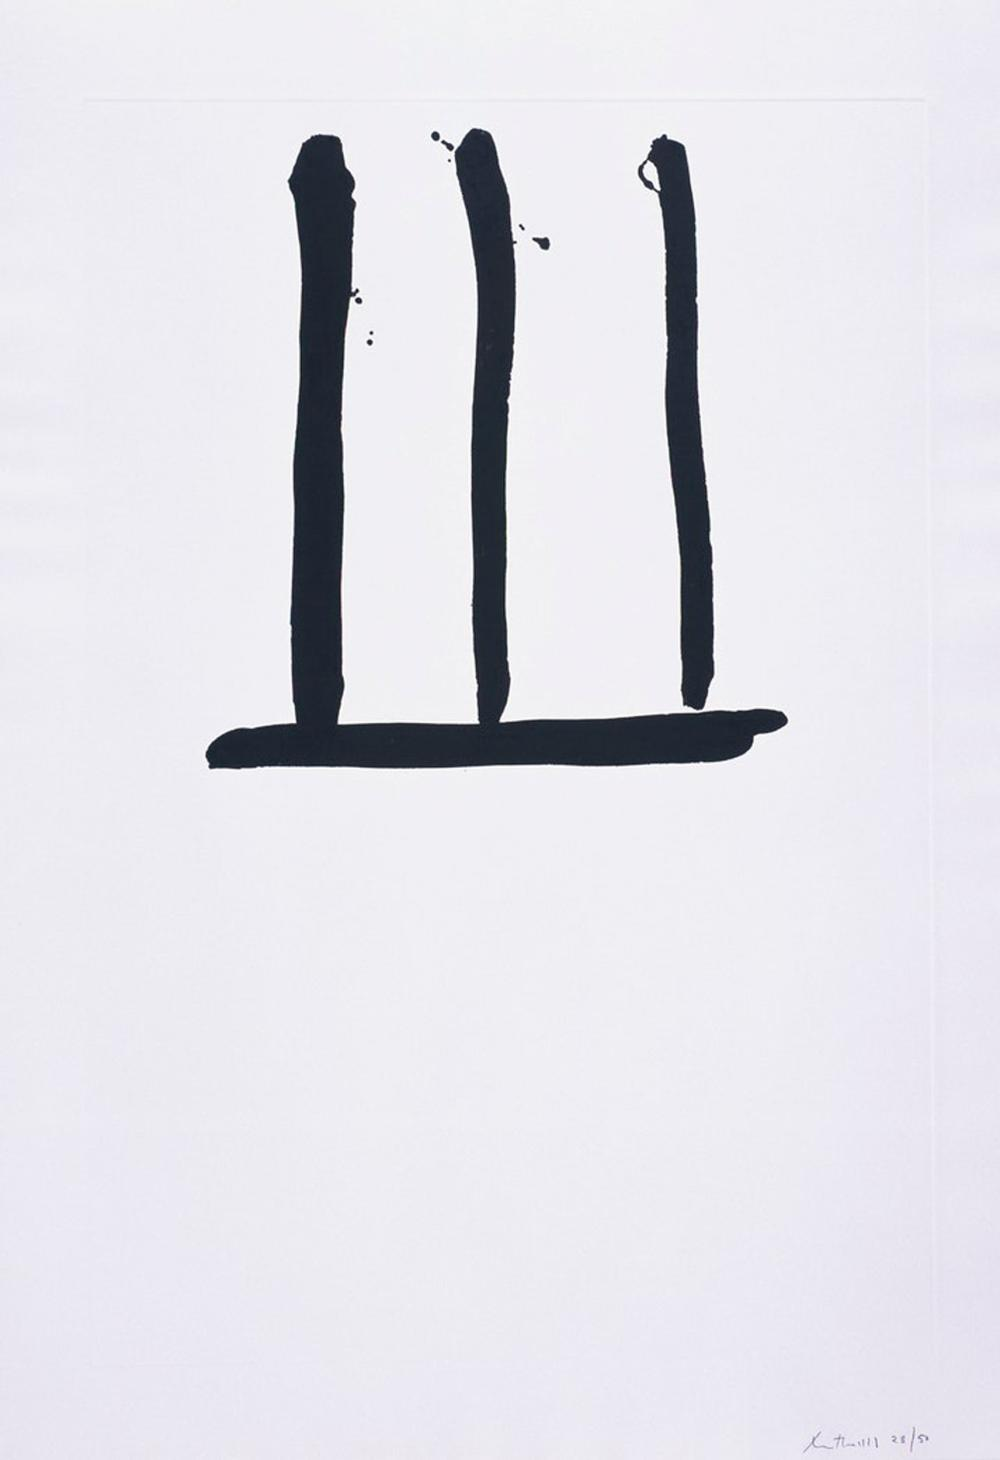 Robert Motherwell, Untitled, Lift-Ground Aquatint Etching